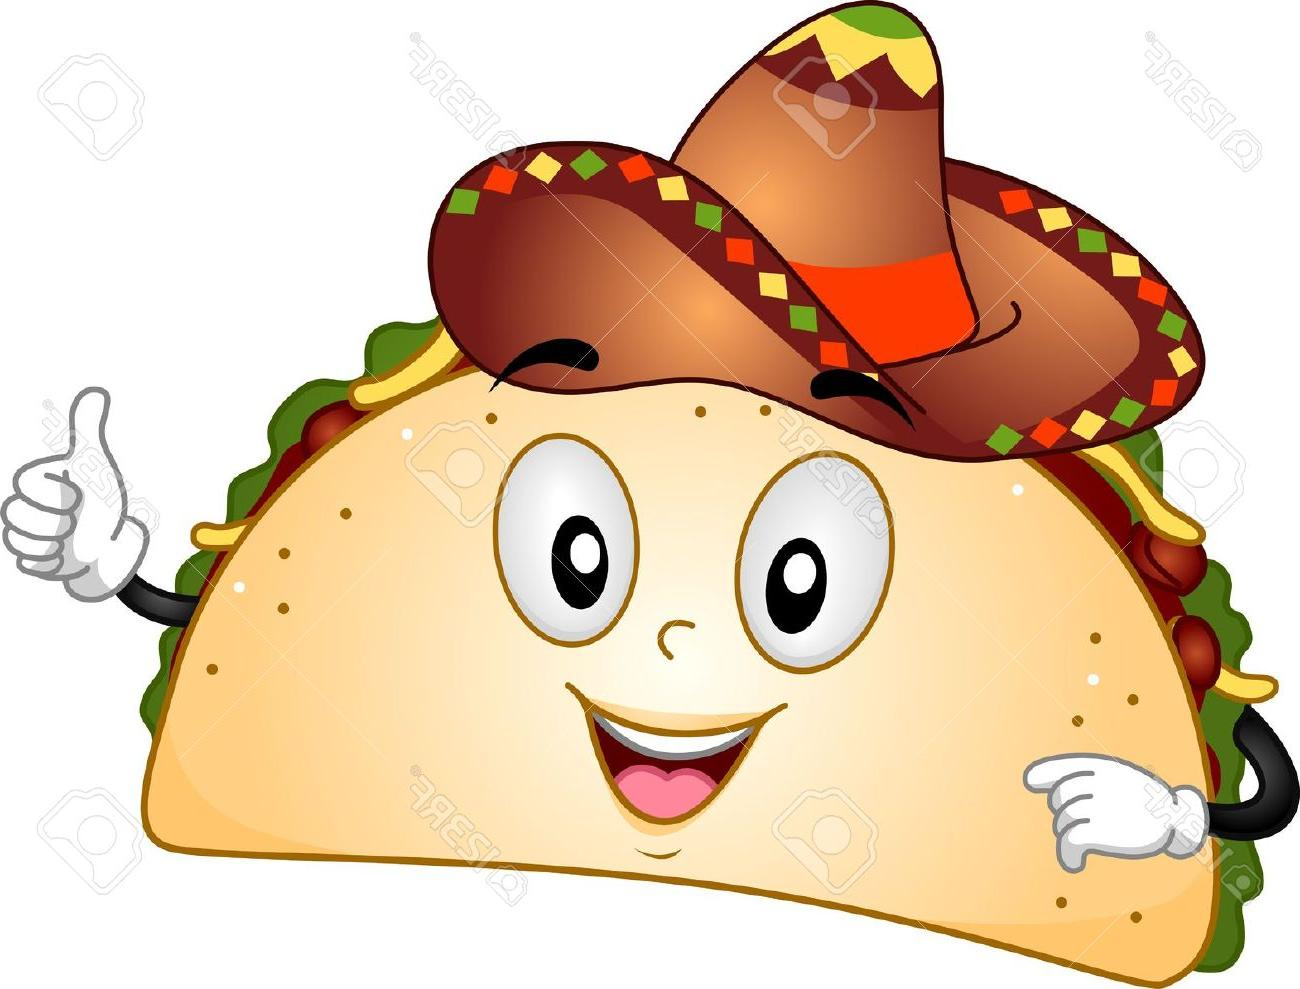 Bibliography clipart animated. Top fish taco image